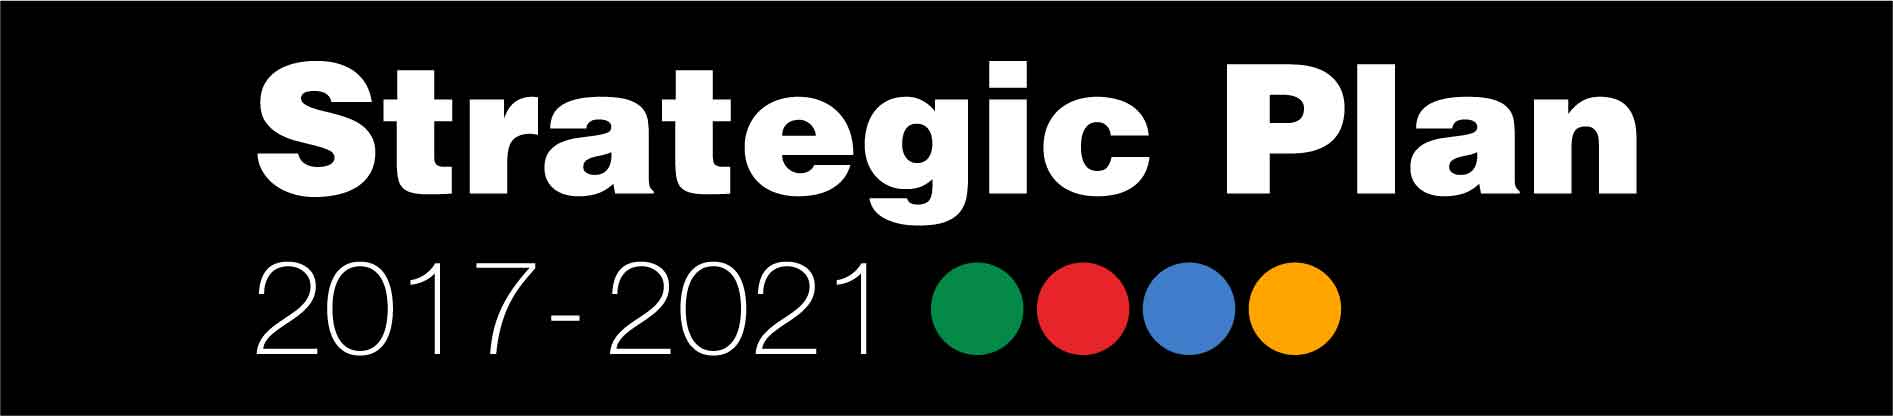 Strategic Plan Logo_original-02